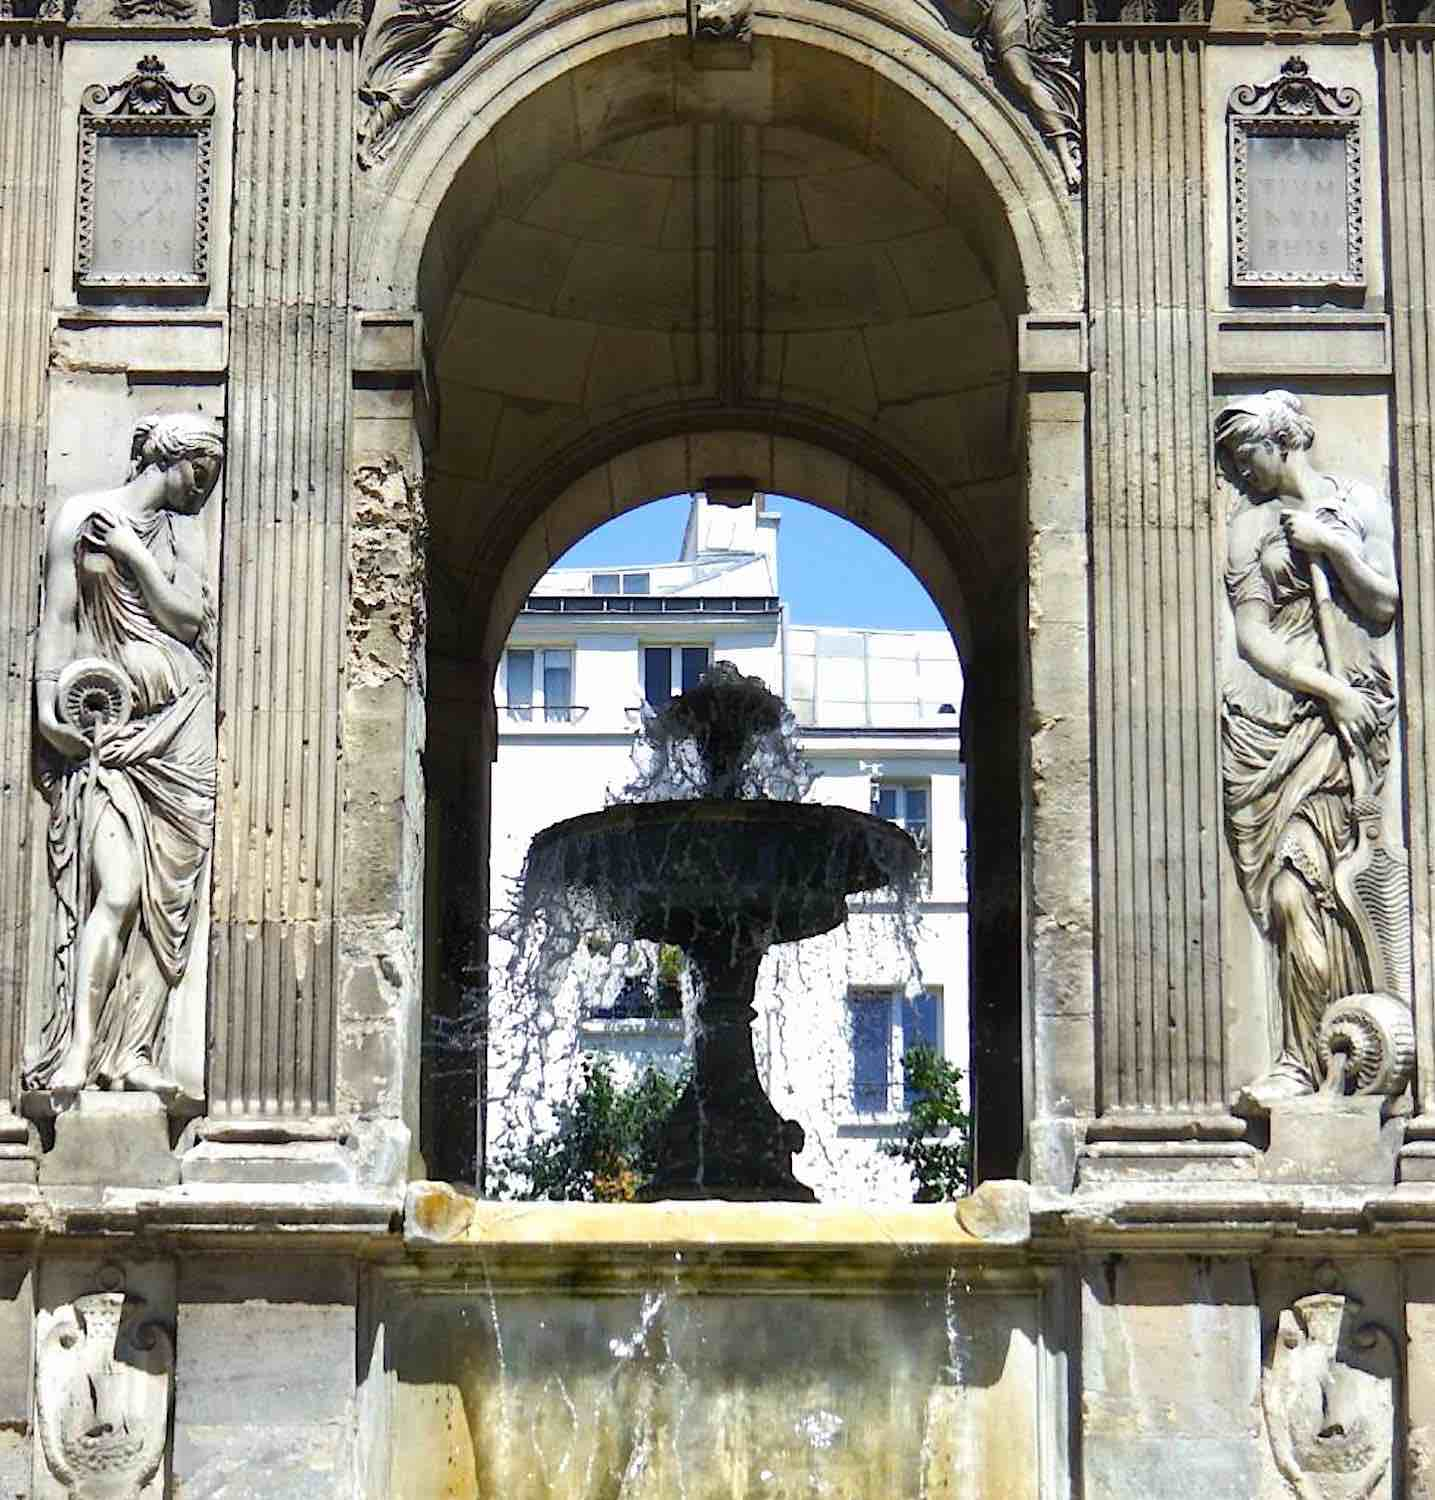 Fontaine des Innocents, Paris